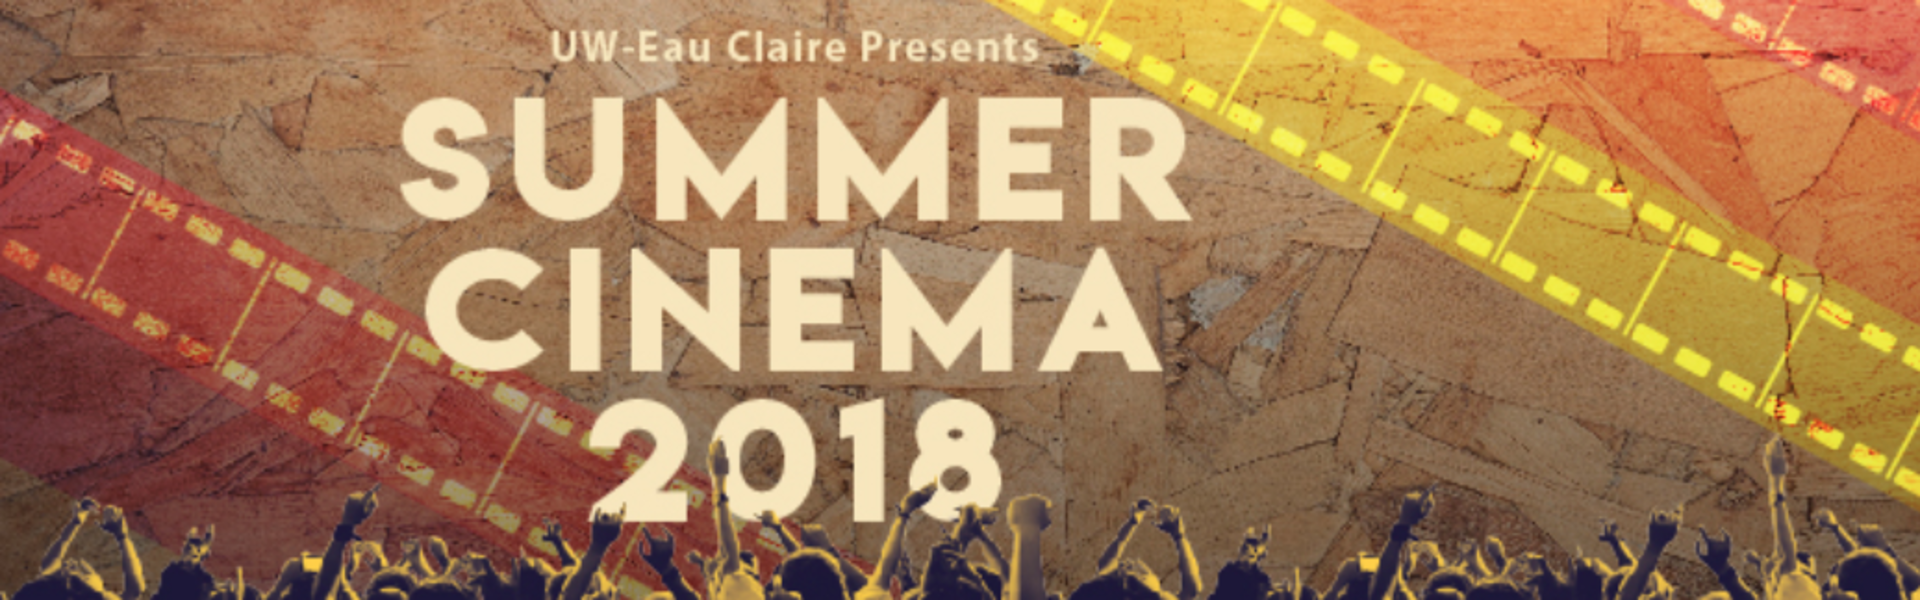 Summer Cinema 2018